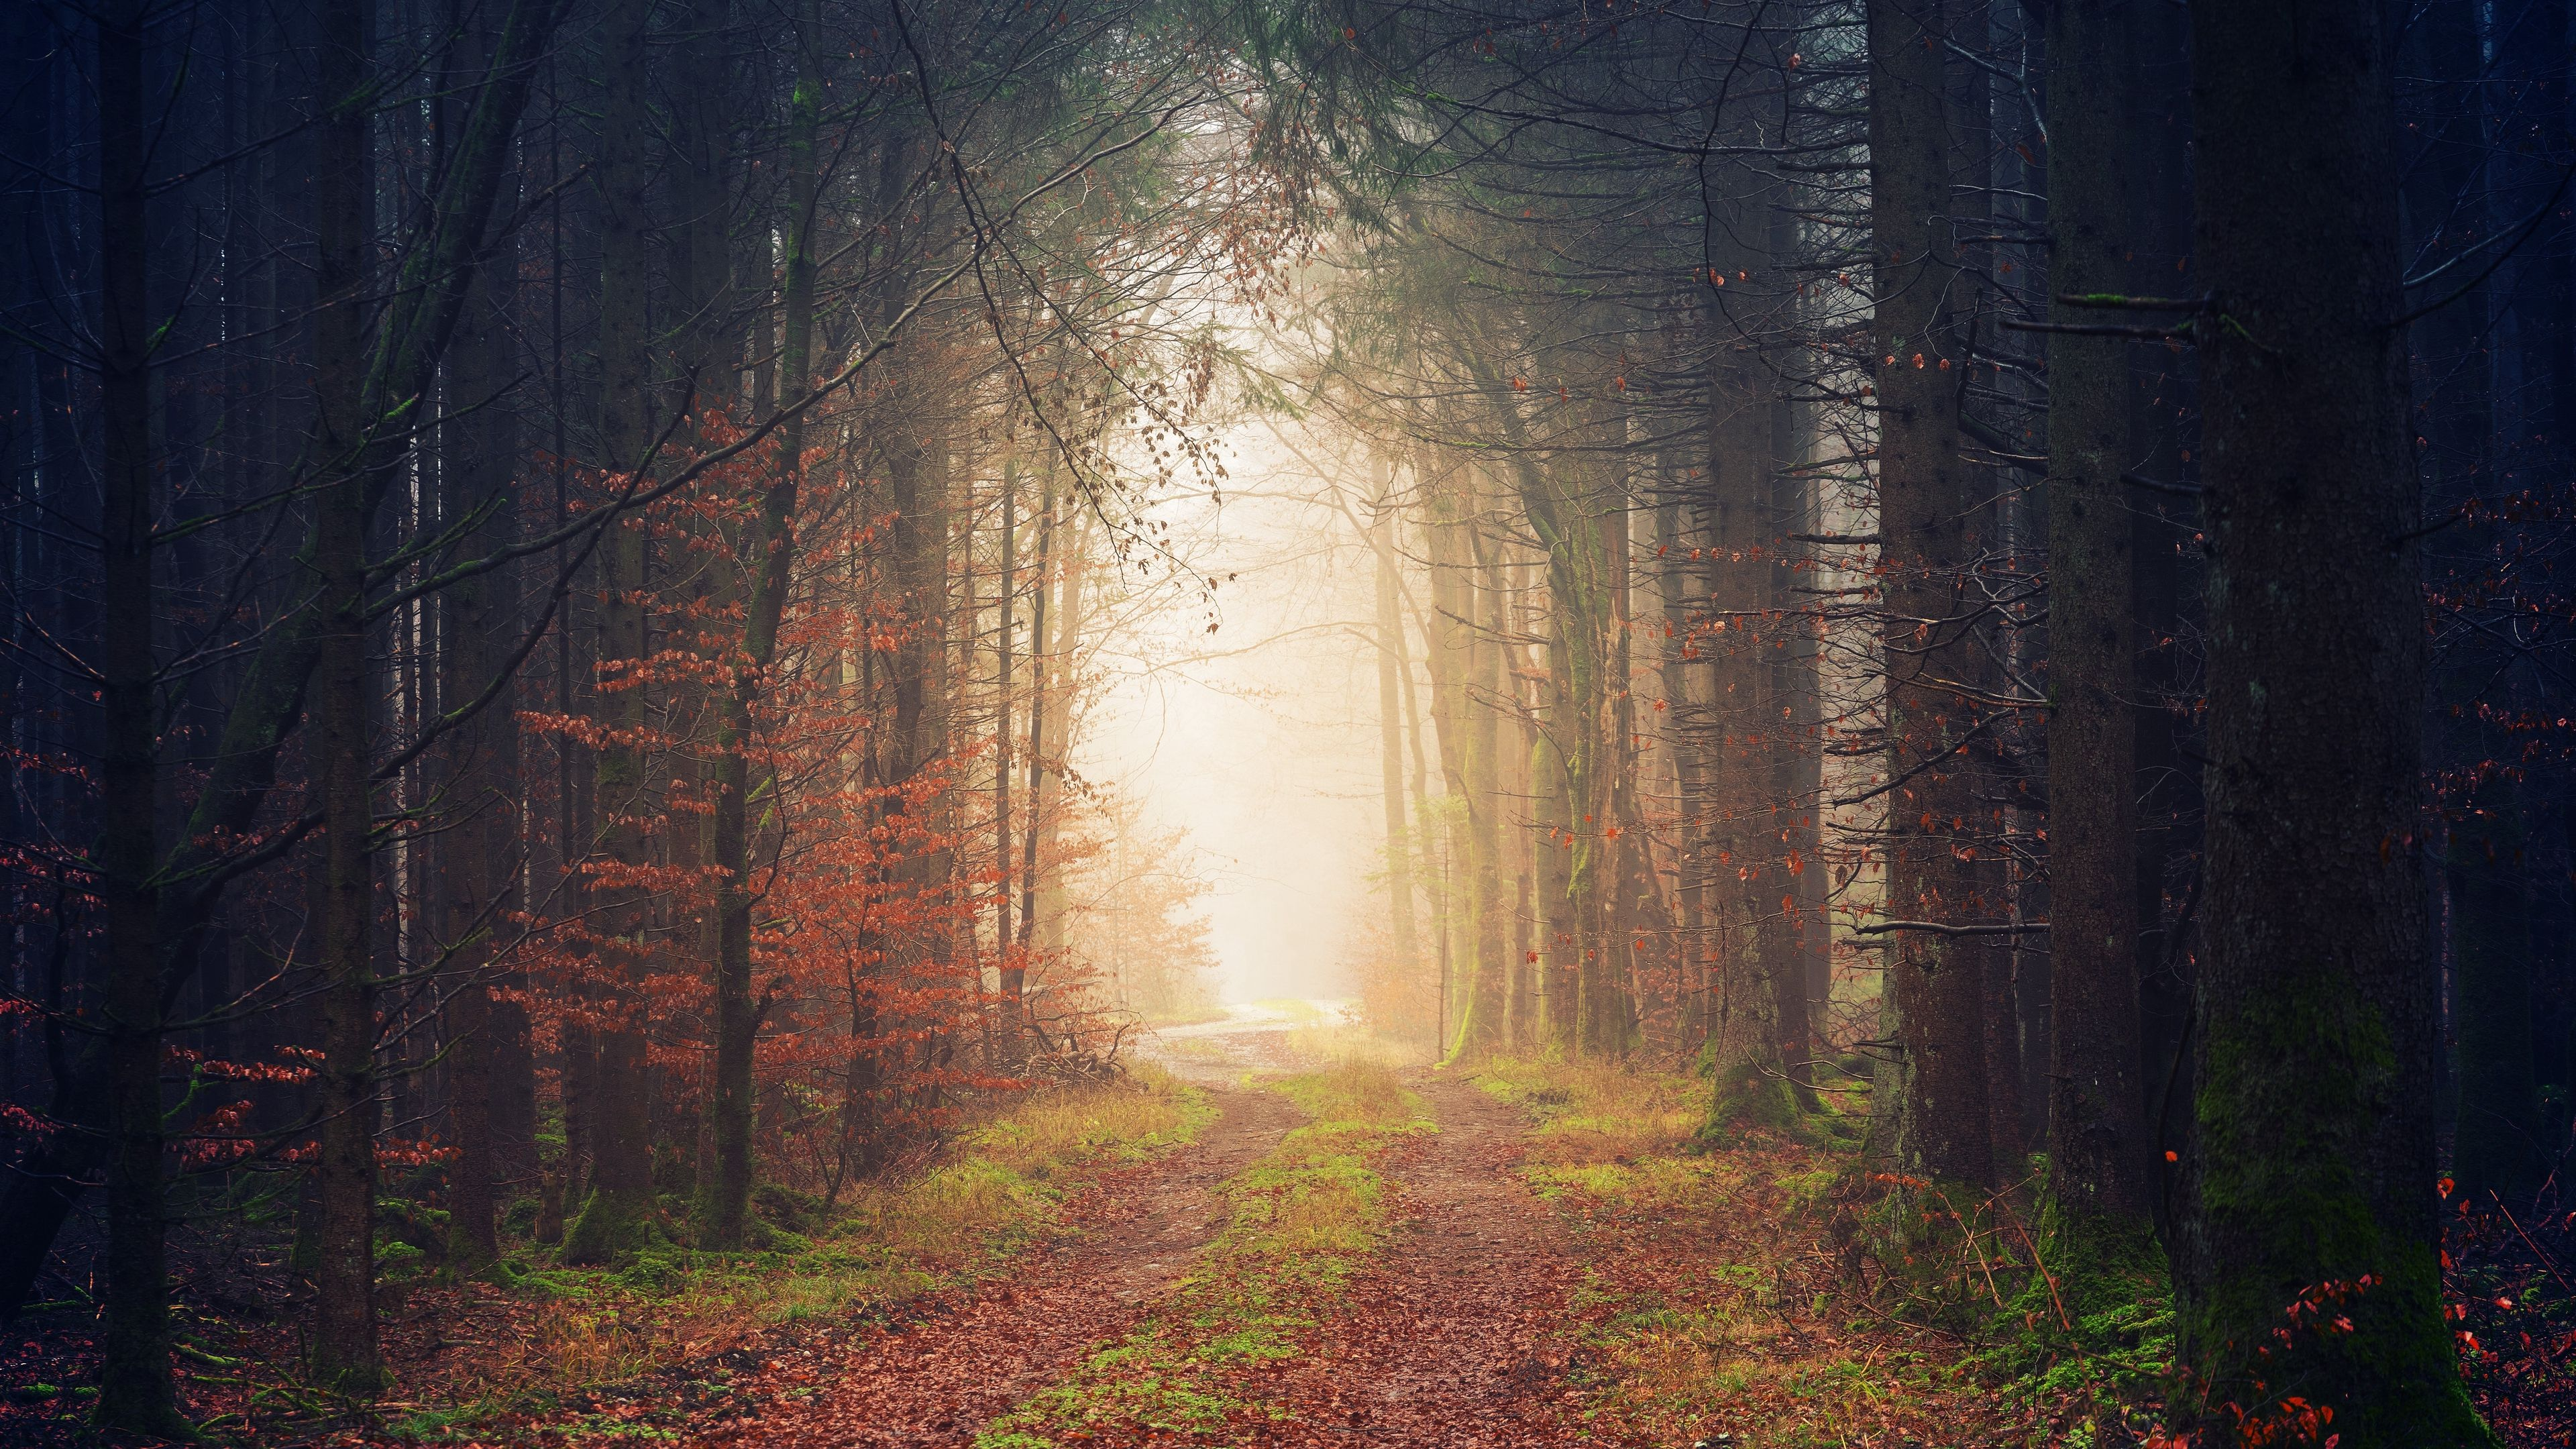 Download wallpapers 3840x2160 autumn, trees, fog, path, foliage 4k